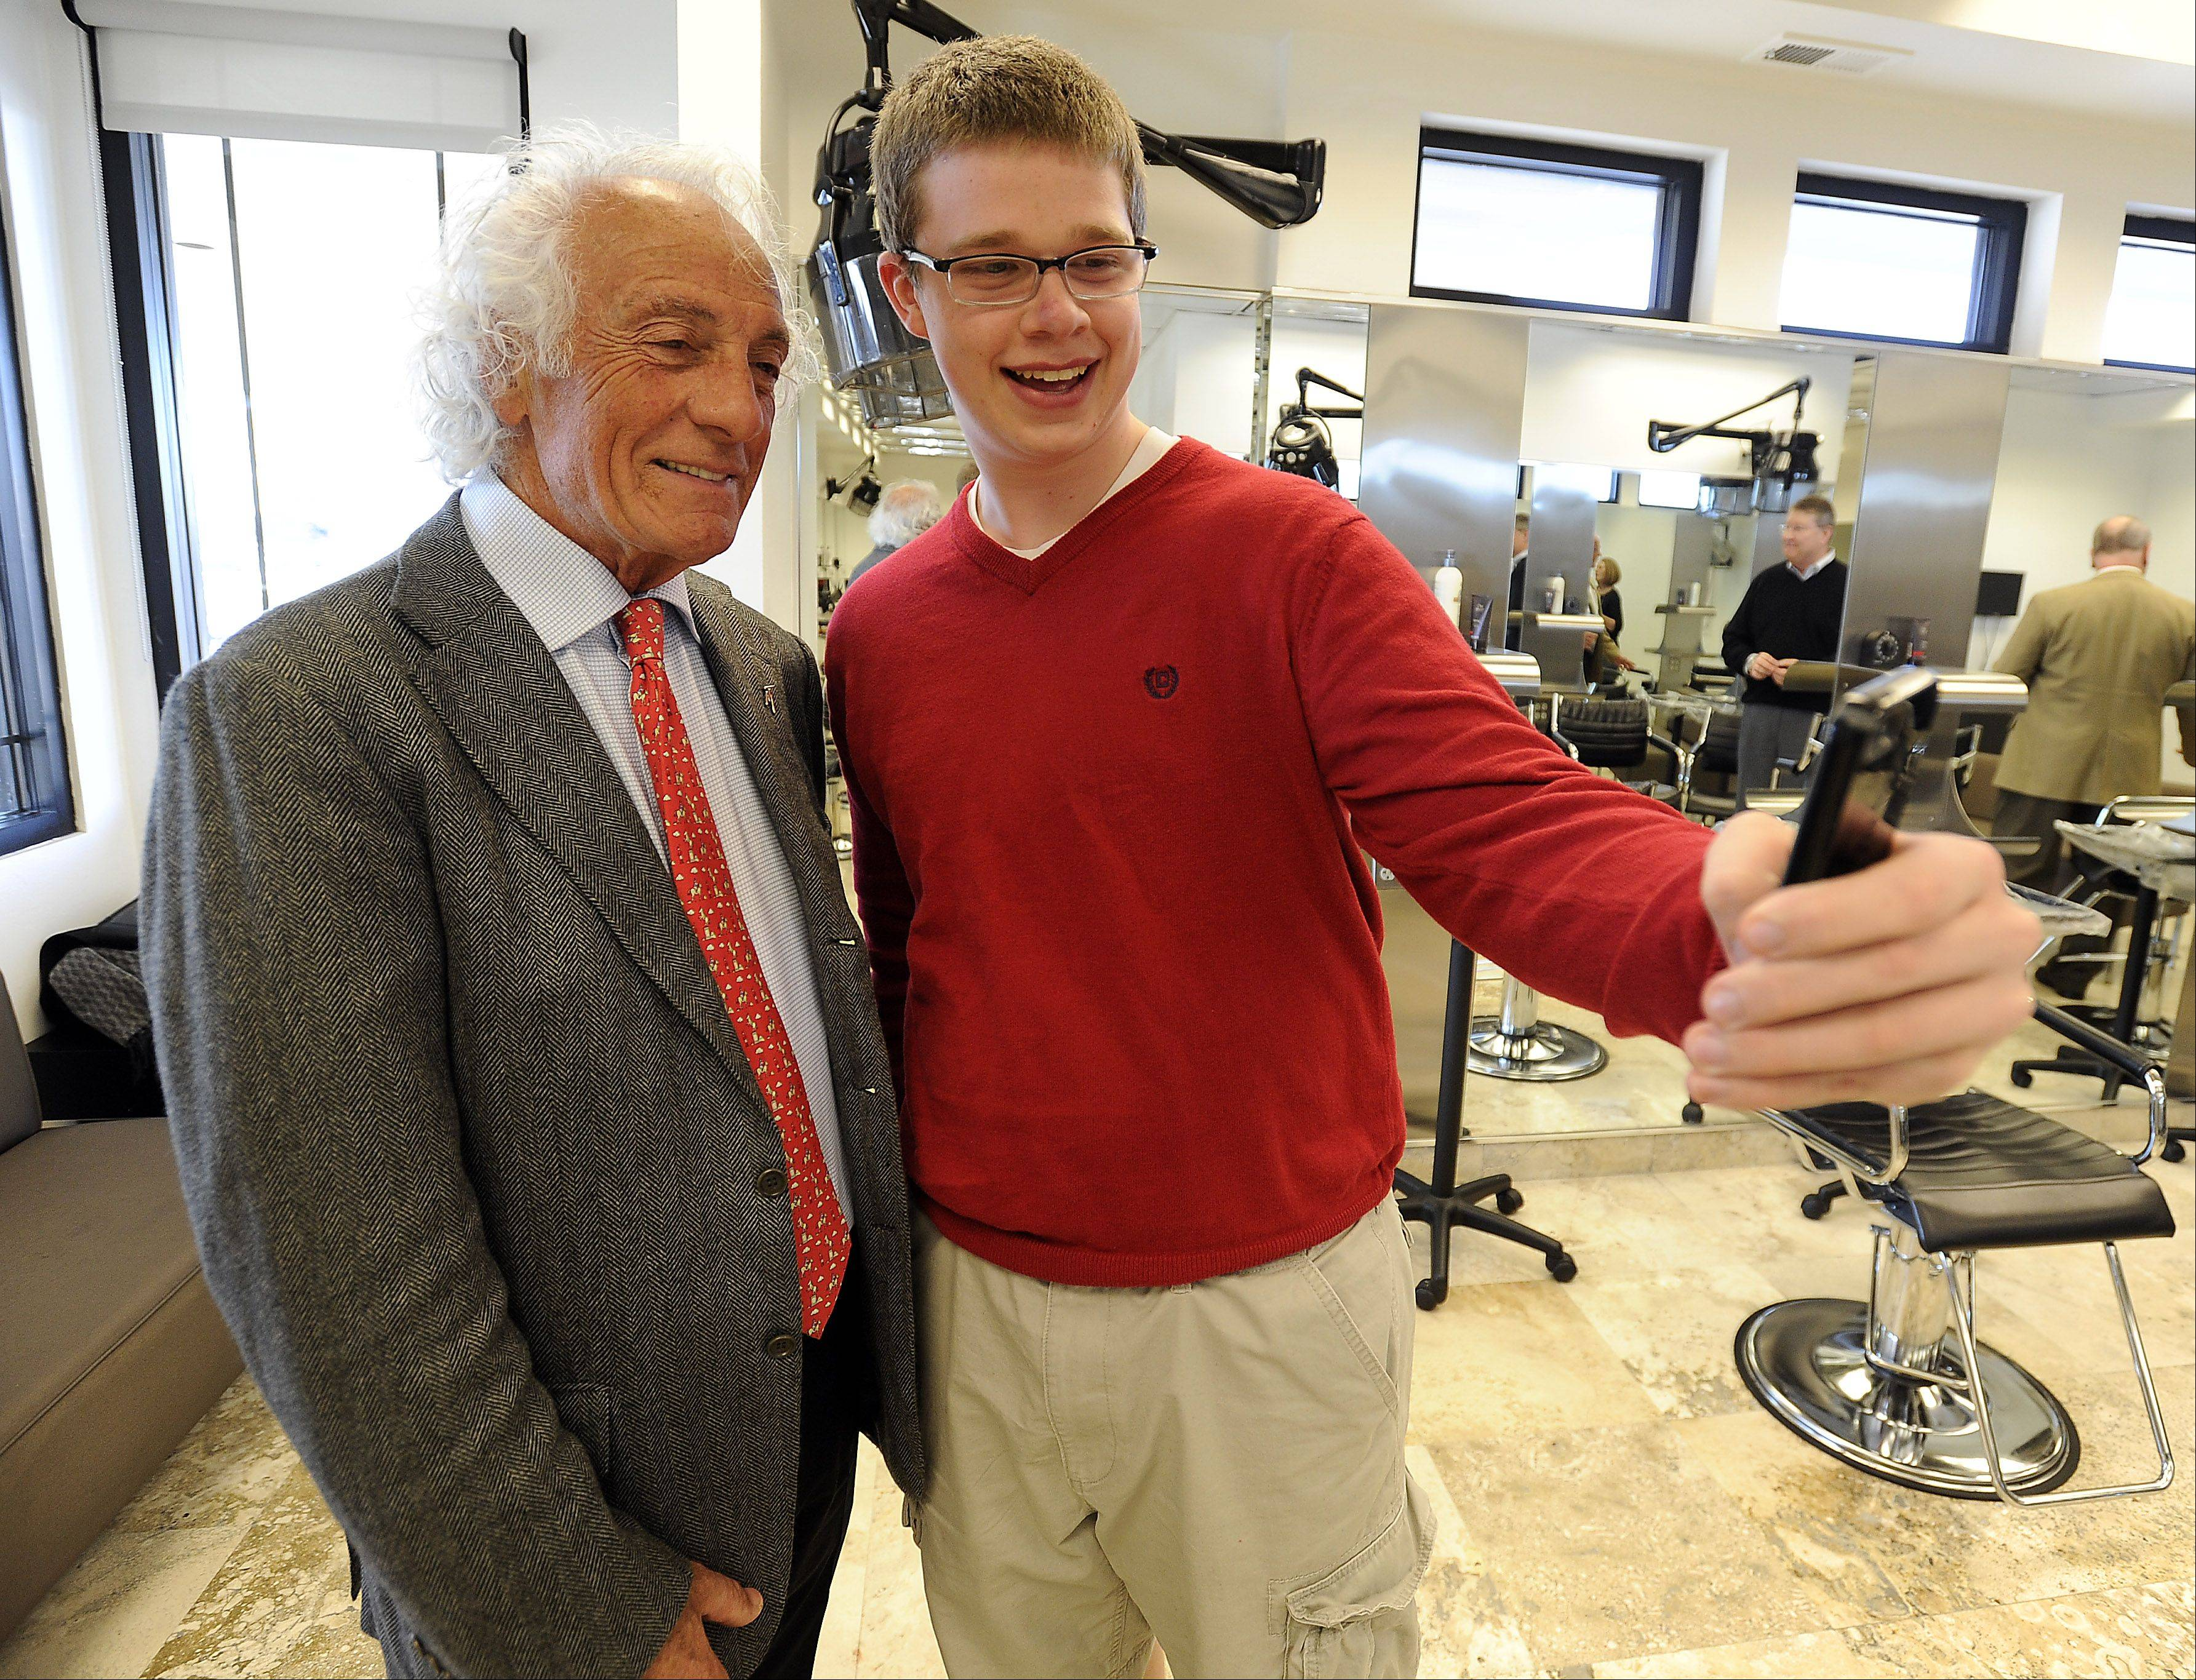 Conant High School student Ben Kusswurm, 17, takes advantage of the moment to take a picture of himself and Mario Tricoci in Schaumburg on Wednesday. Kusswurm is part of the Young Entrepreneurs Academy, which teaches students about entrepreneurship and professional presence.